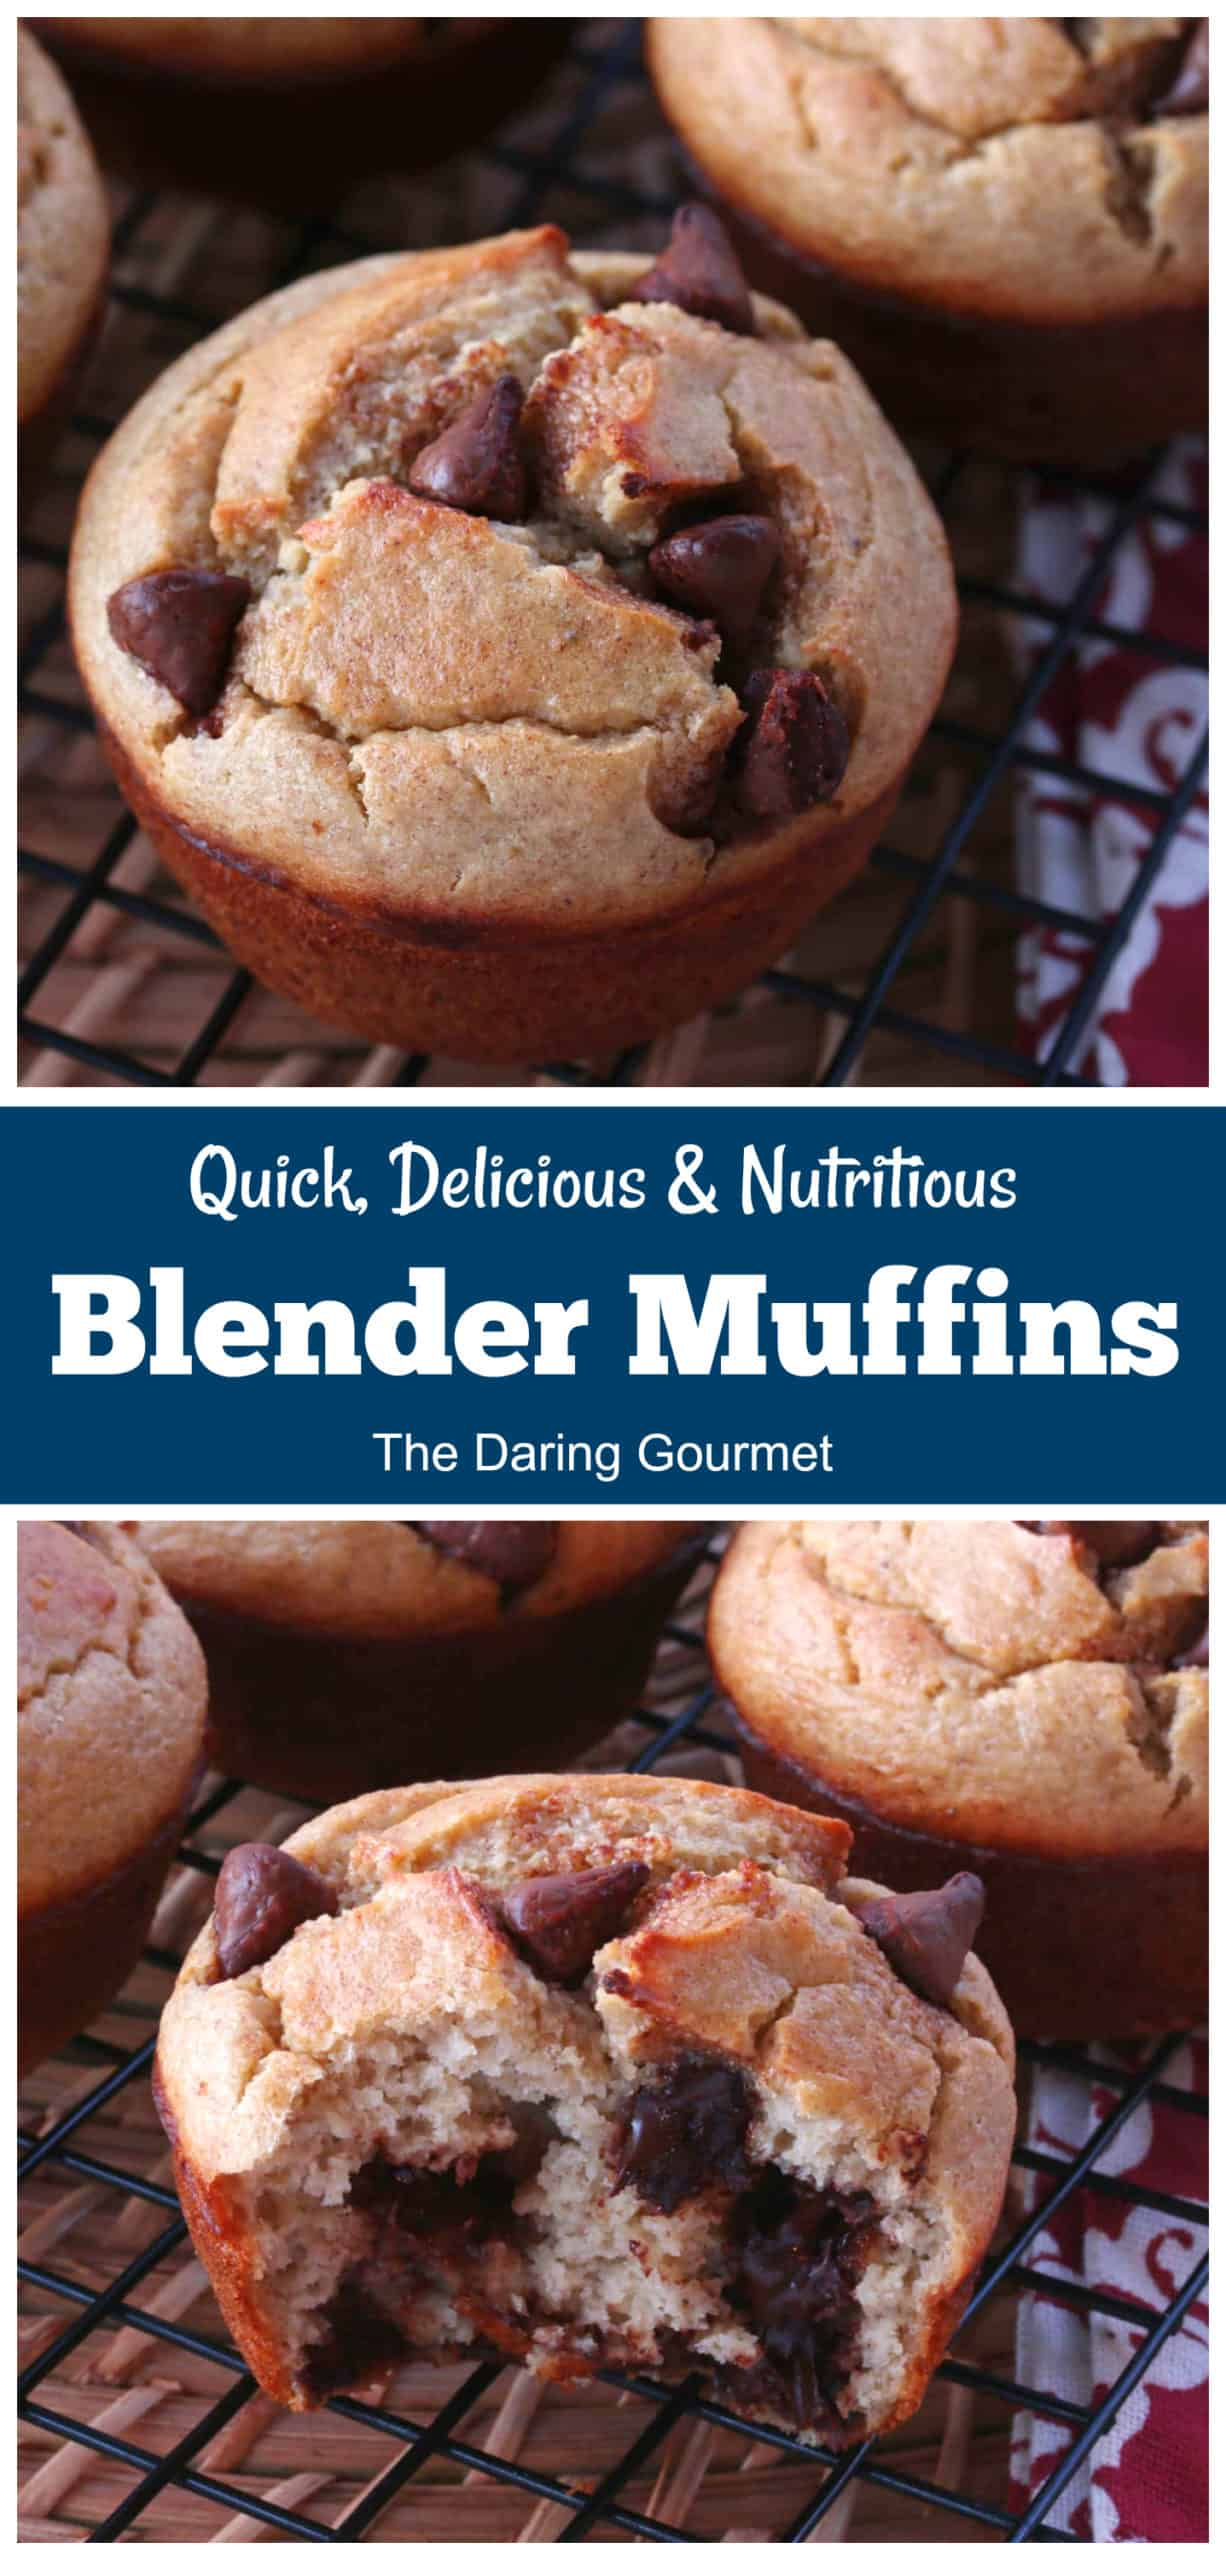 blender muffins recipe easy healthy without flour sugar oil gluten free chocolate chips banana